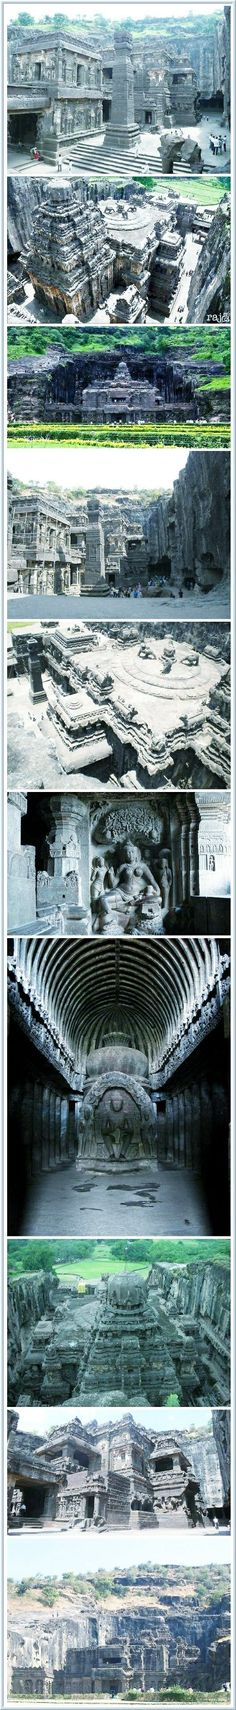 JOJO POST STAR GATES: 400 millions years old underground facility located in India (The Kailasa in Ellora, India), situated iln a natural Limestone now open at the top that no one knows who and why built it. This underground facility became a place of hindus worship! In the 1800s as a Temple. Who and why they built it? What do we know?